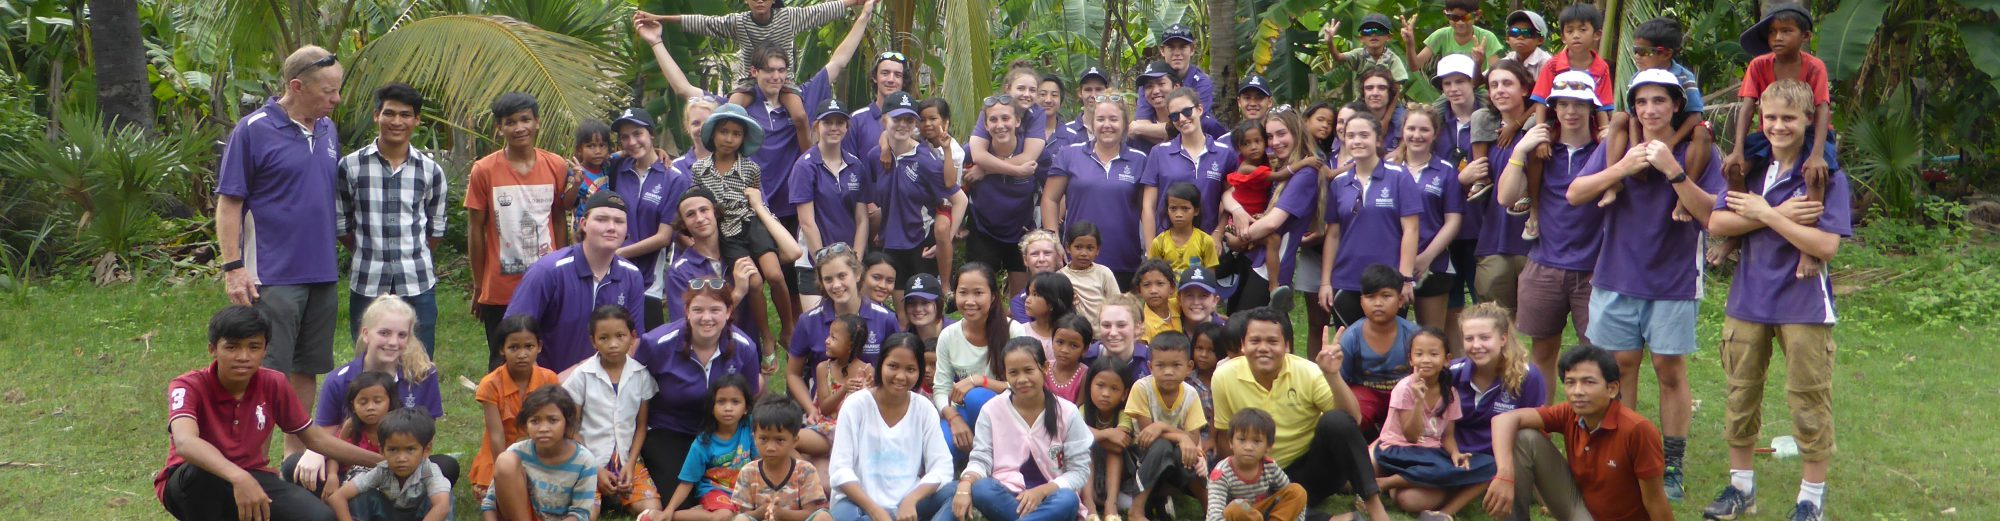 Ivanhoe Grammar School Service Project June 2016 at AKC